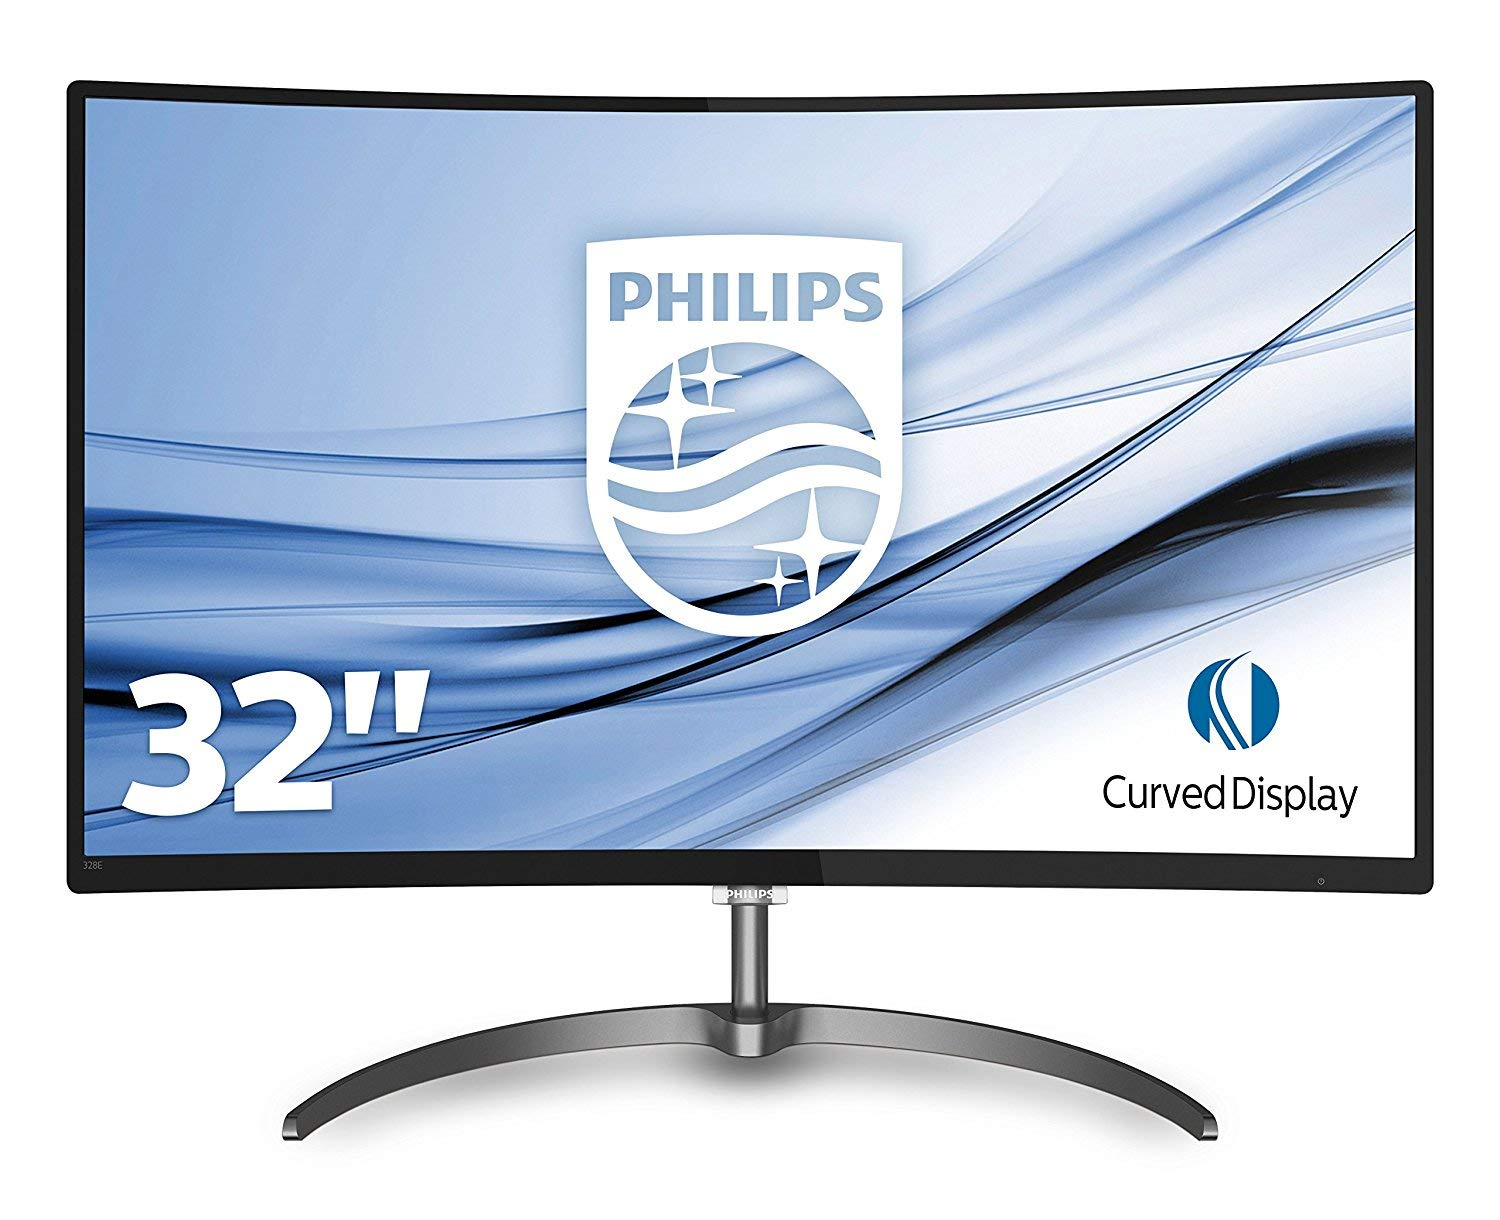 Philips Monitores 328E8QJAB5/00 - Monitor de 32' (resolució n 1920 x 1080 Pixeles, LED, 5 ms, 250 CD/m² ) Color Negro y Gris Philips Monitores 328E8QJAB5/00 - Monitor de 32 (resolución 1920 x 1080 Pixeles 250 CD/m²) Color Negro y Gris